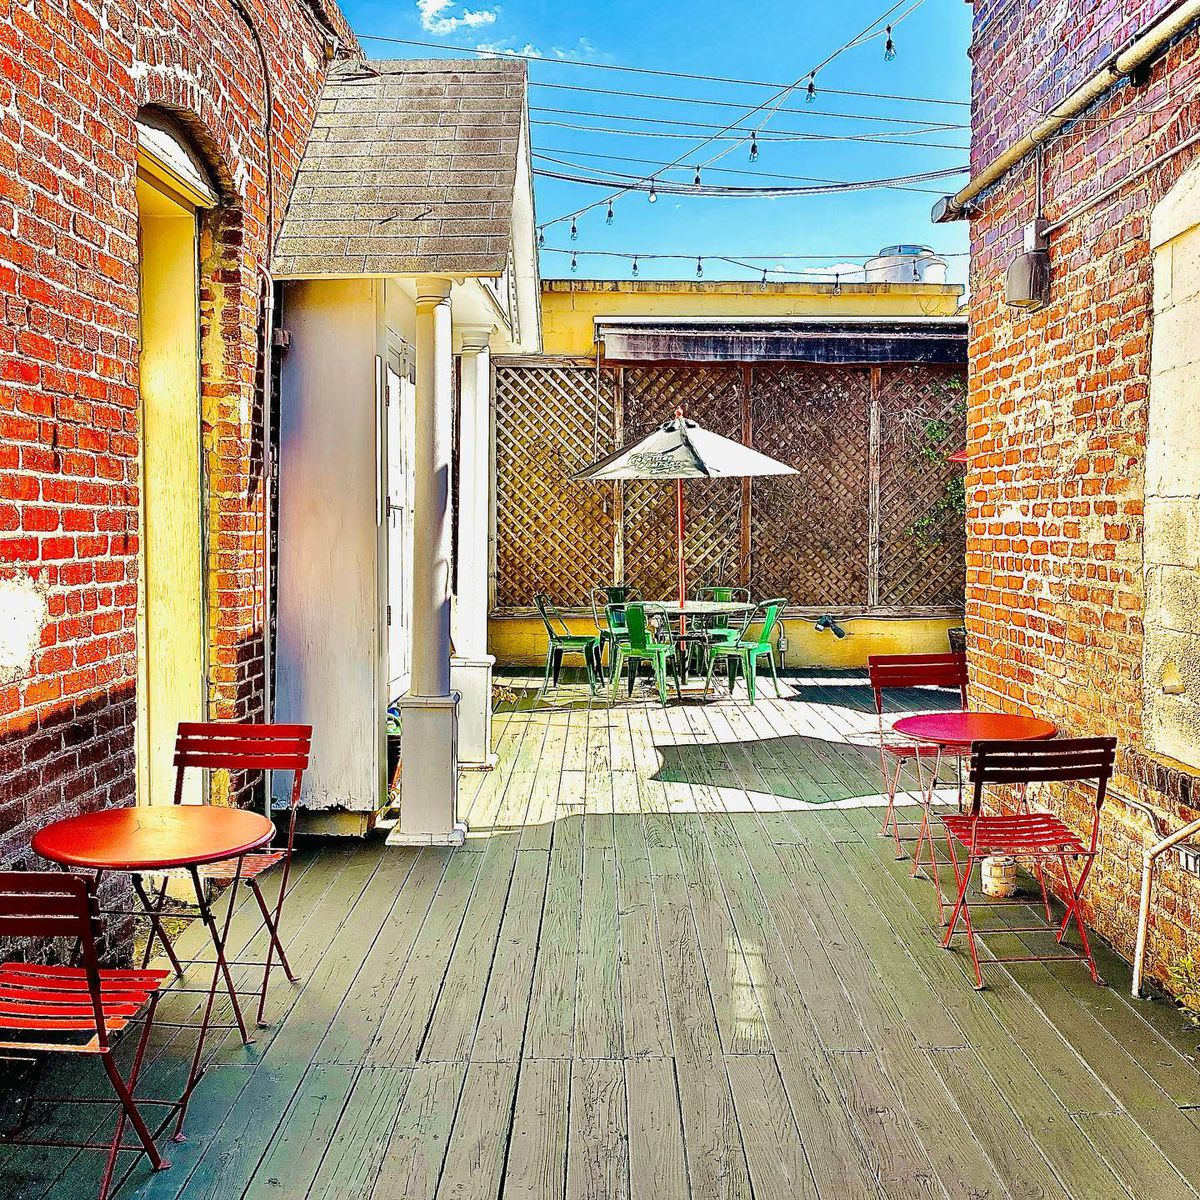 The back patio at former One Eared Stag